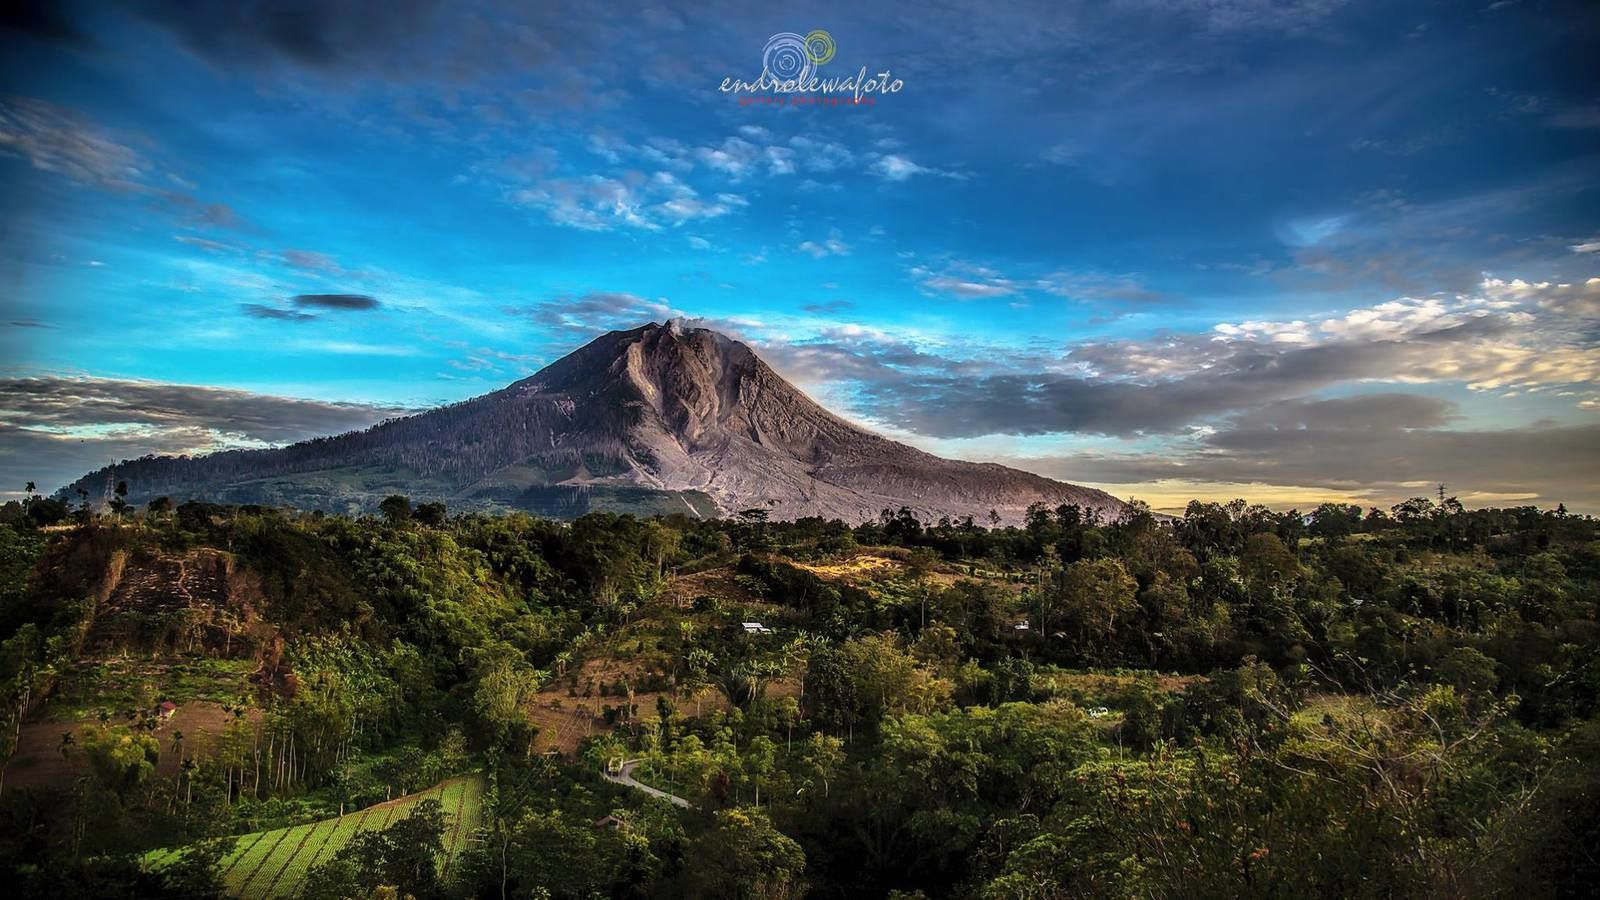 Sinabung - the volcano under a blue clear sky on 02/10/2016 / 6:44 - photo Endro Lewa